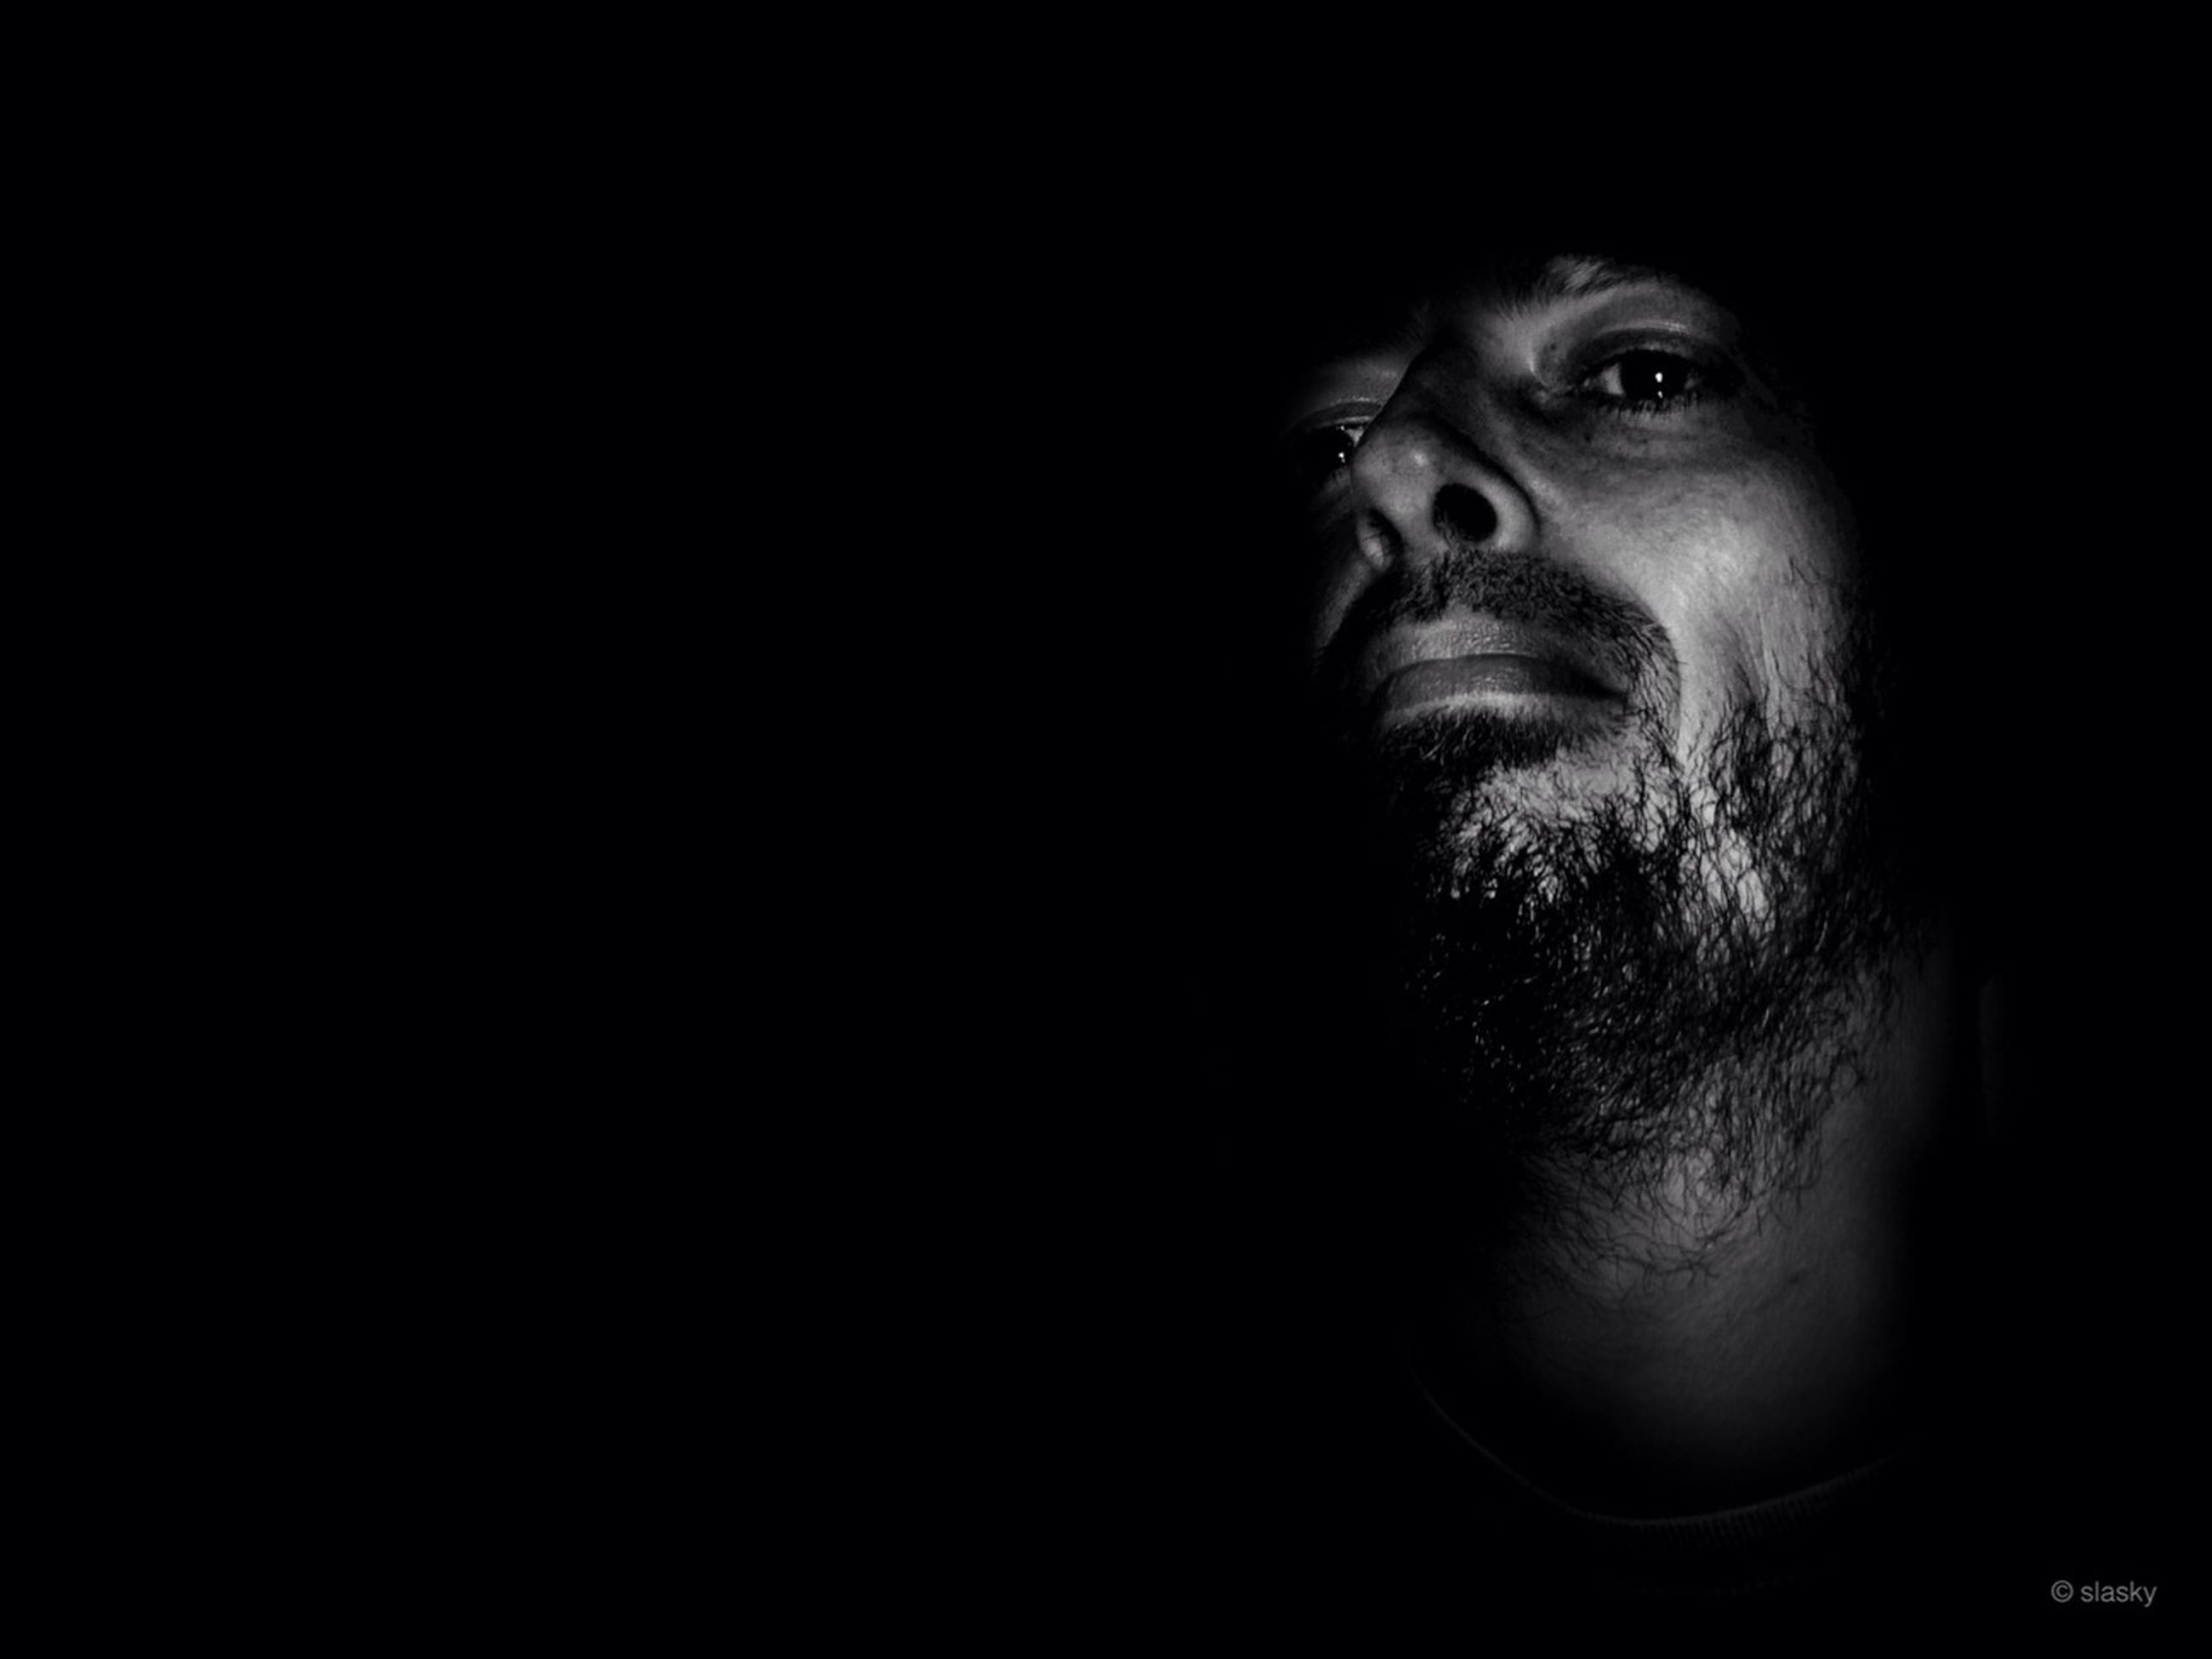 black background, studio shot, headshot, young adult, copy space, portrait, looking at camera, lifestyles, person, human face, indoors, close-up, front view, dark, contemplation, serious, young men